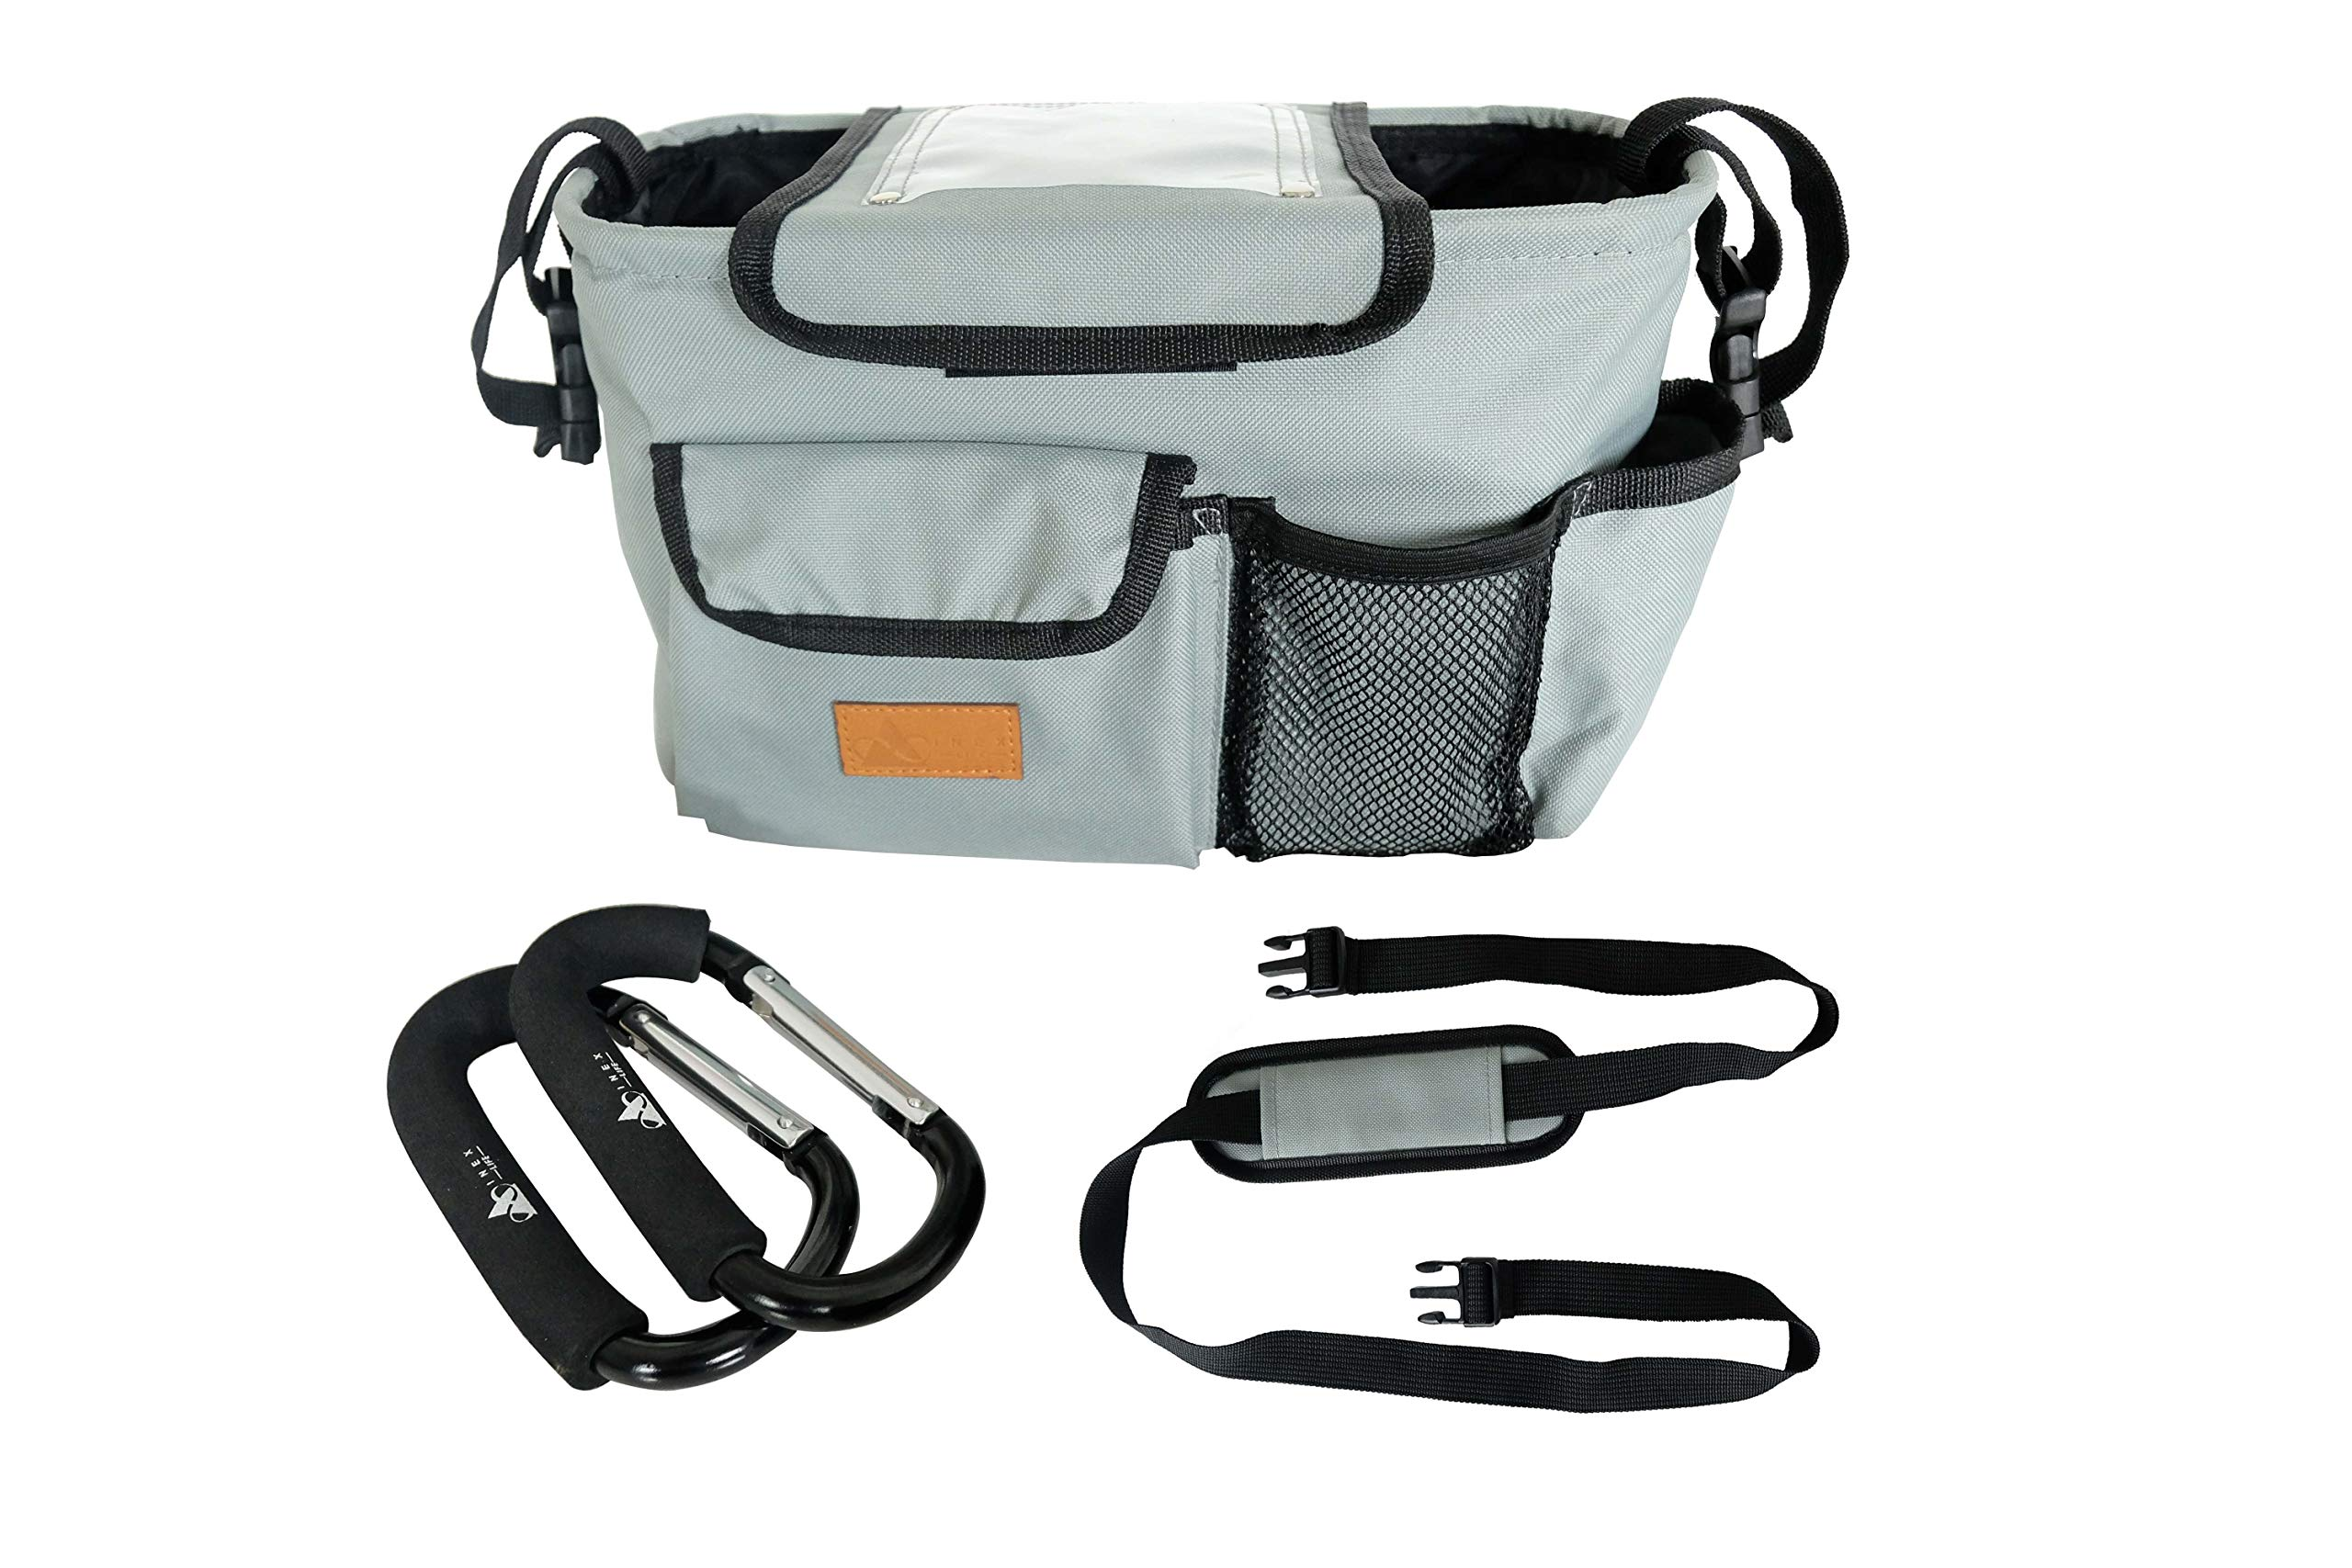 Stroller Organizer & Padded Hooks - Universal Parent Console, Caddy, Carriage Accessories | Durable NO Sag or Shape Loss, Collapsible Design | Padded Shoulder Strap, Deep Insulated Cup Bottle Holder